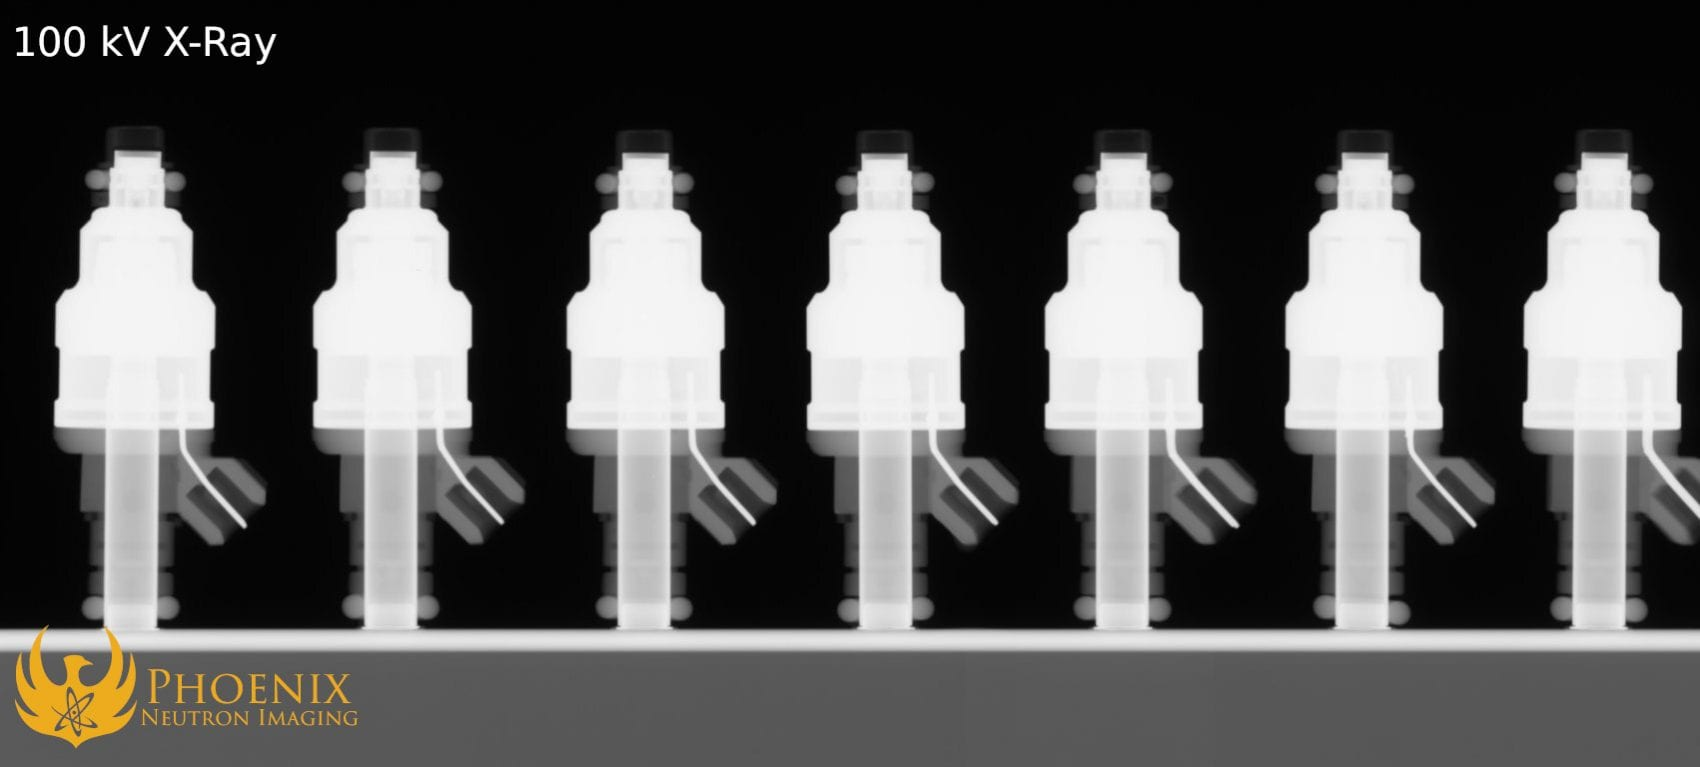 100kV X-Ray Image: Fuel Injectors